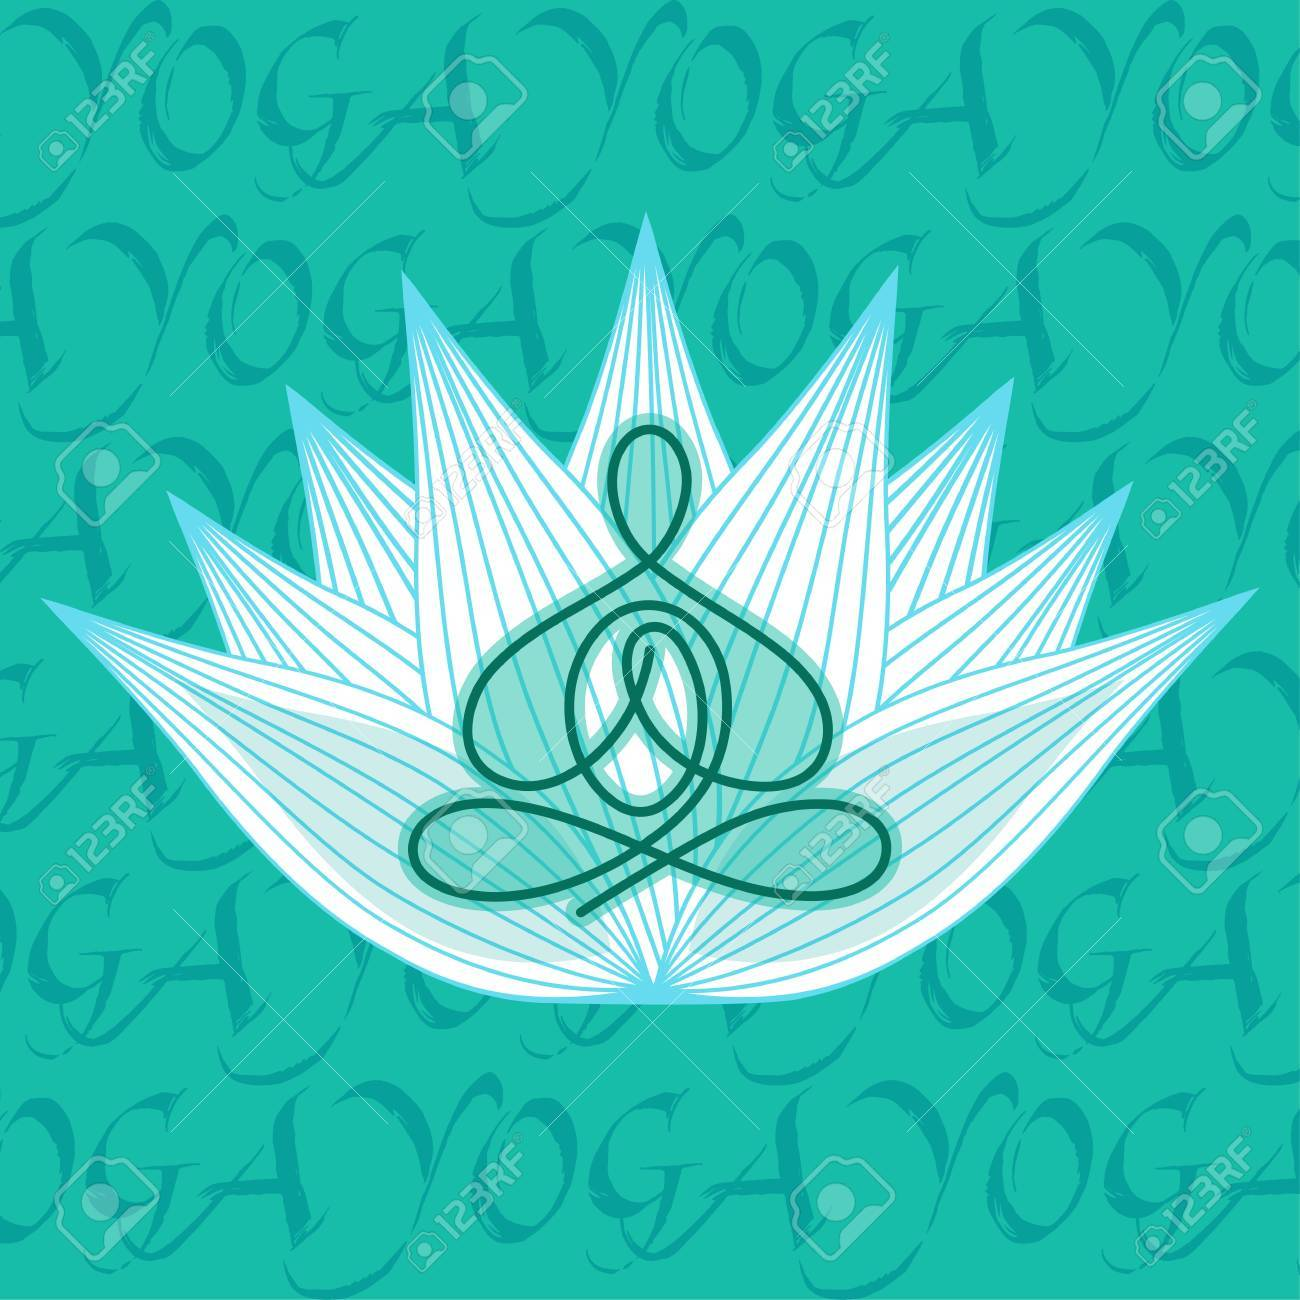 Picture Man In Yoga Pose On A Lotus Flower Design Royalty Free